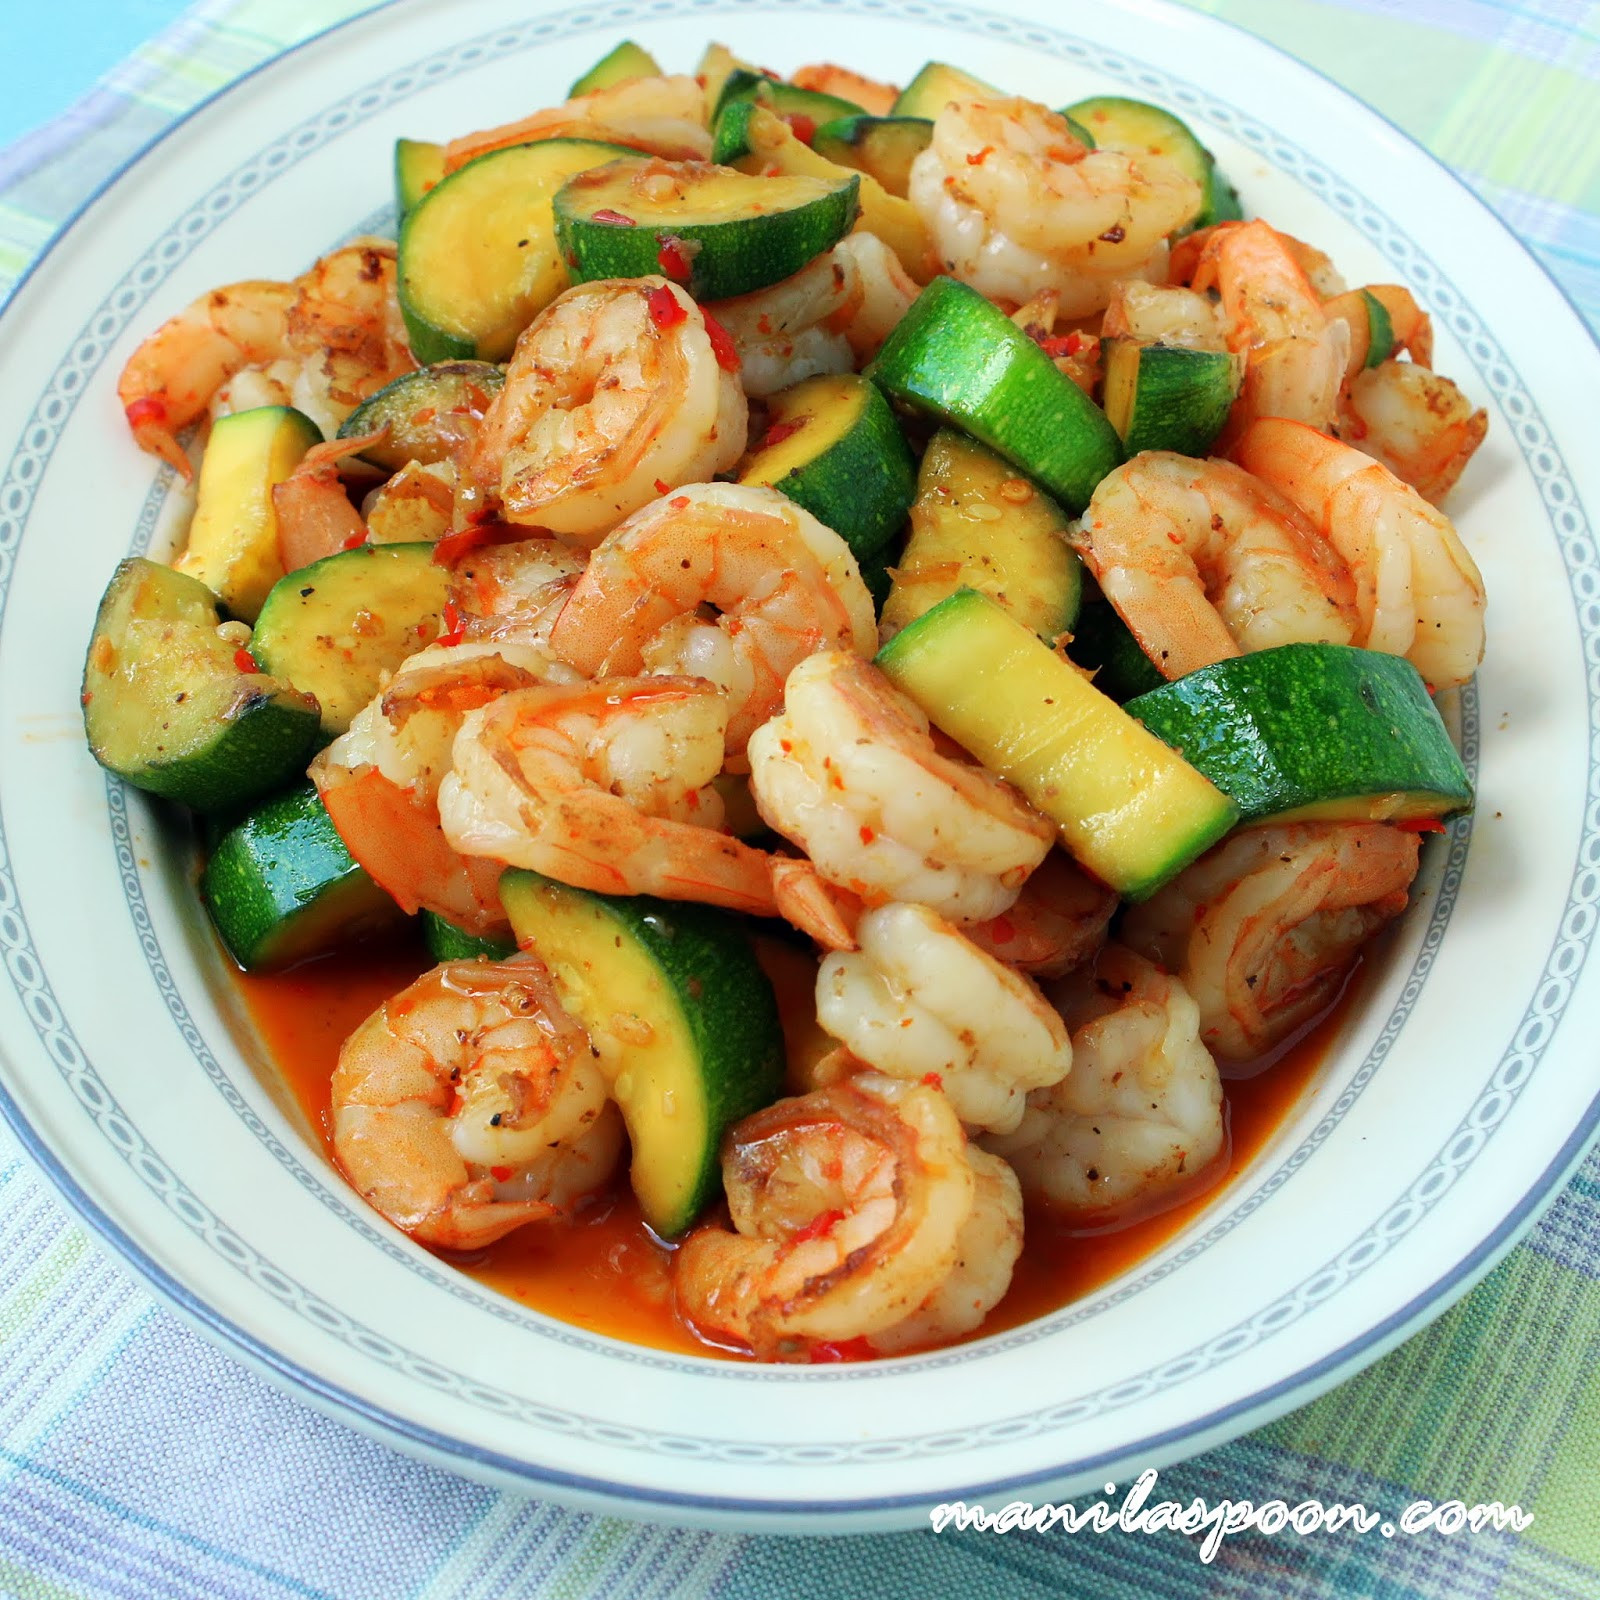 Shrimp And Zucchini  Sweet and Spicy Shrimp and Zucchini Stir Fry